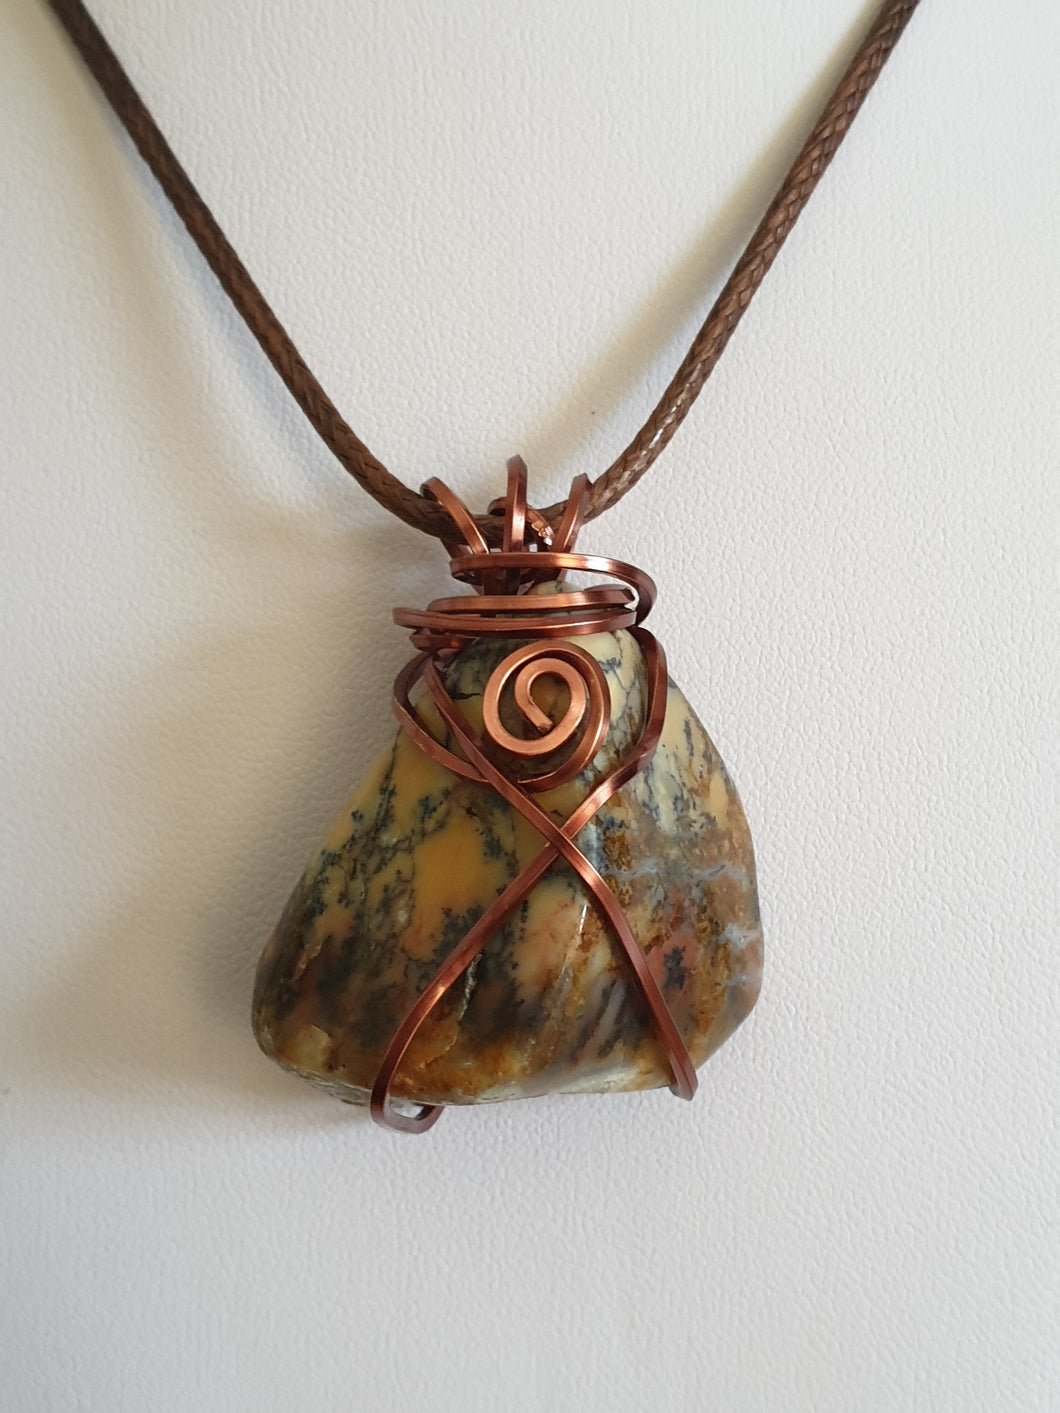 Australian Dendritic Moss Agate (Merlinite) with antique copper wire wrapped pendant